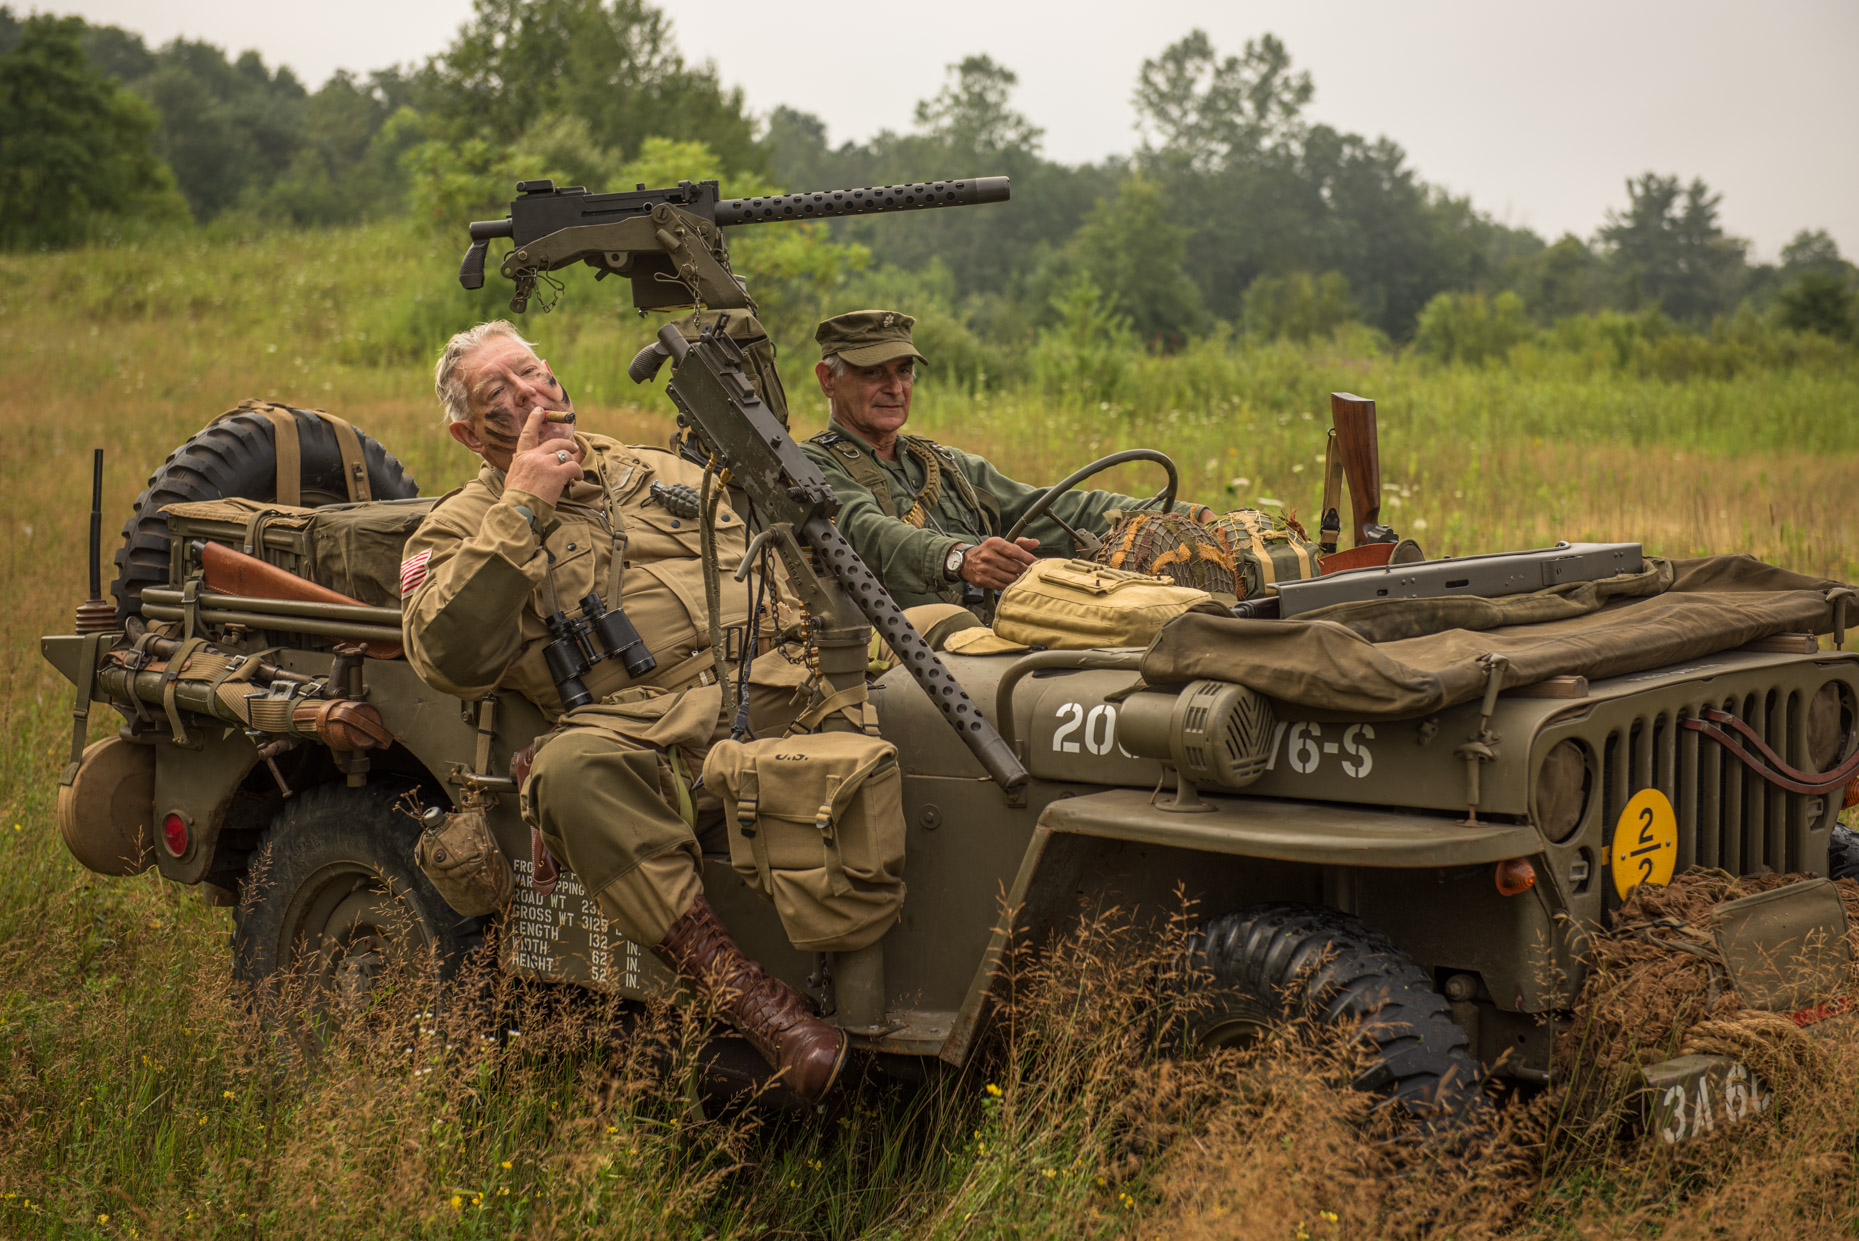 General Patton Impersonator at WWII Reenactment